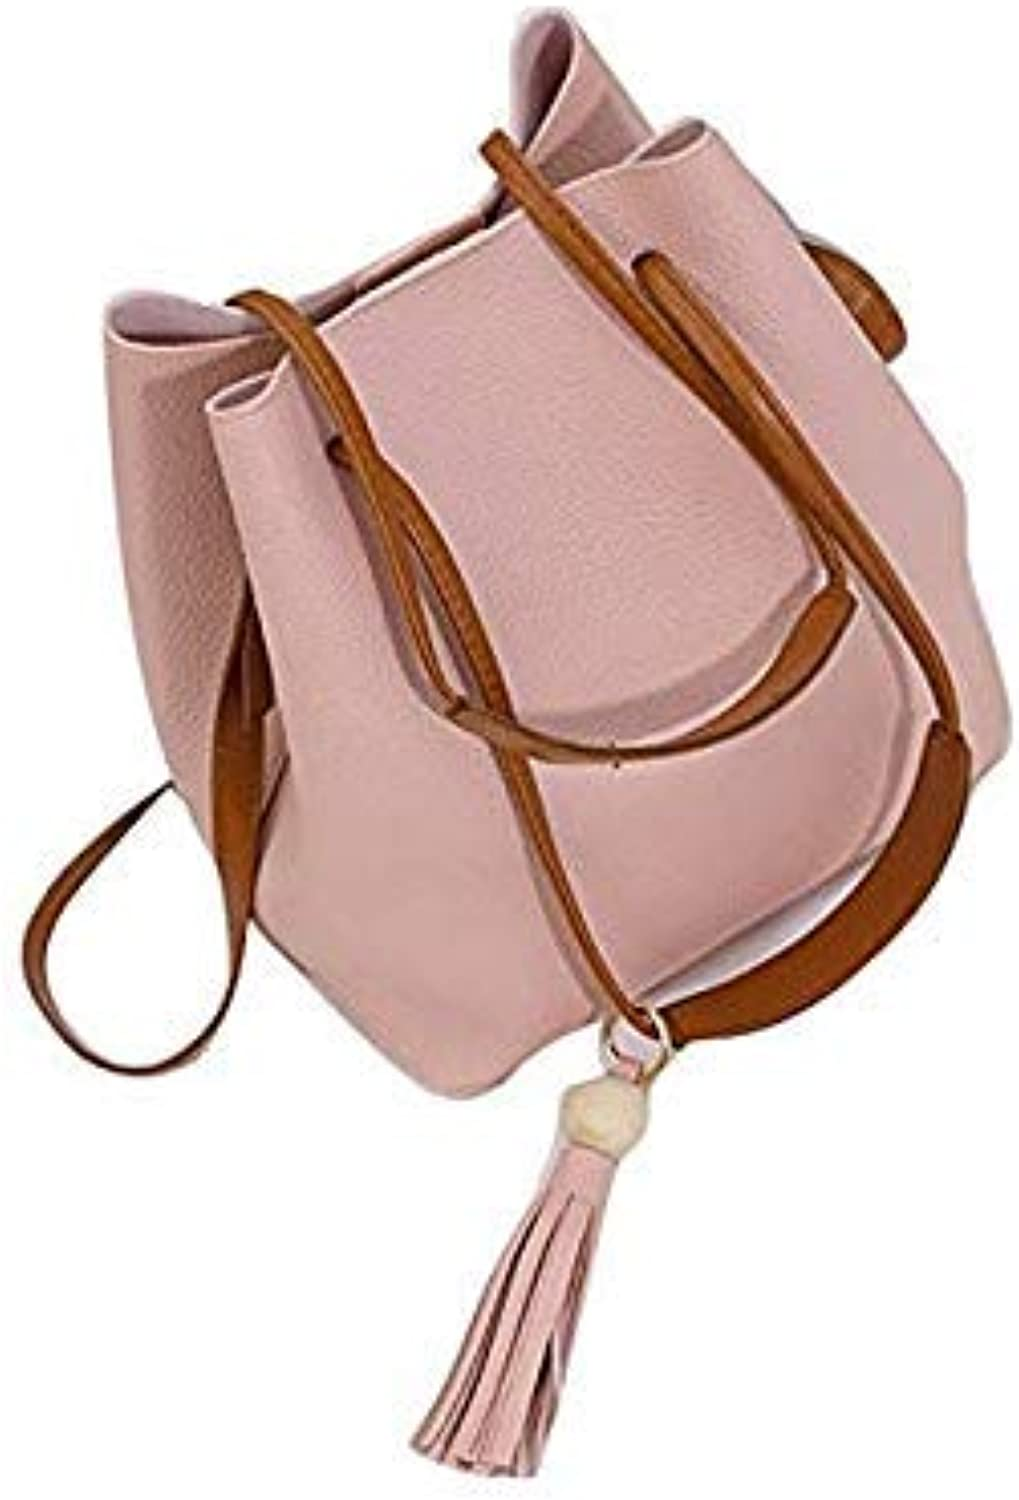 Bloomerang Fashion Women Leather Tassels Single Shoulder Bucket Bag+Clutch Bag 1Set Convenient and Simple Bag Bags for Women Handbag 0810 color Pink